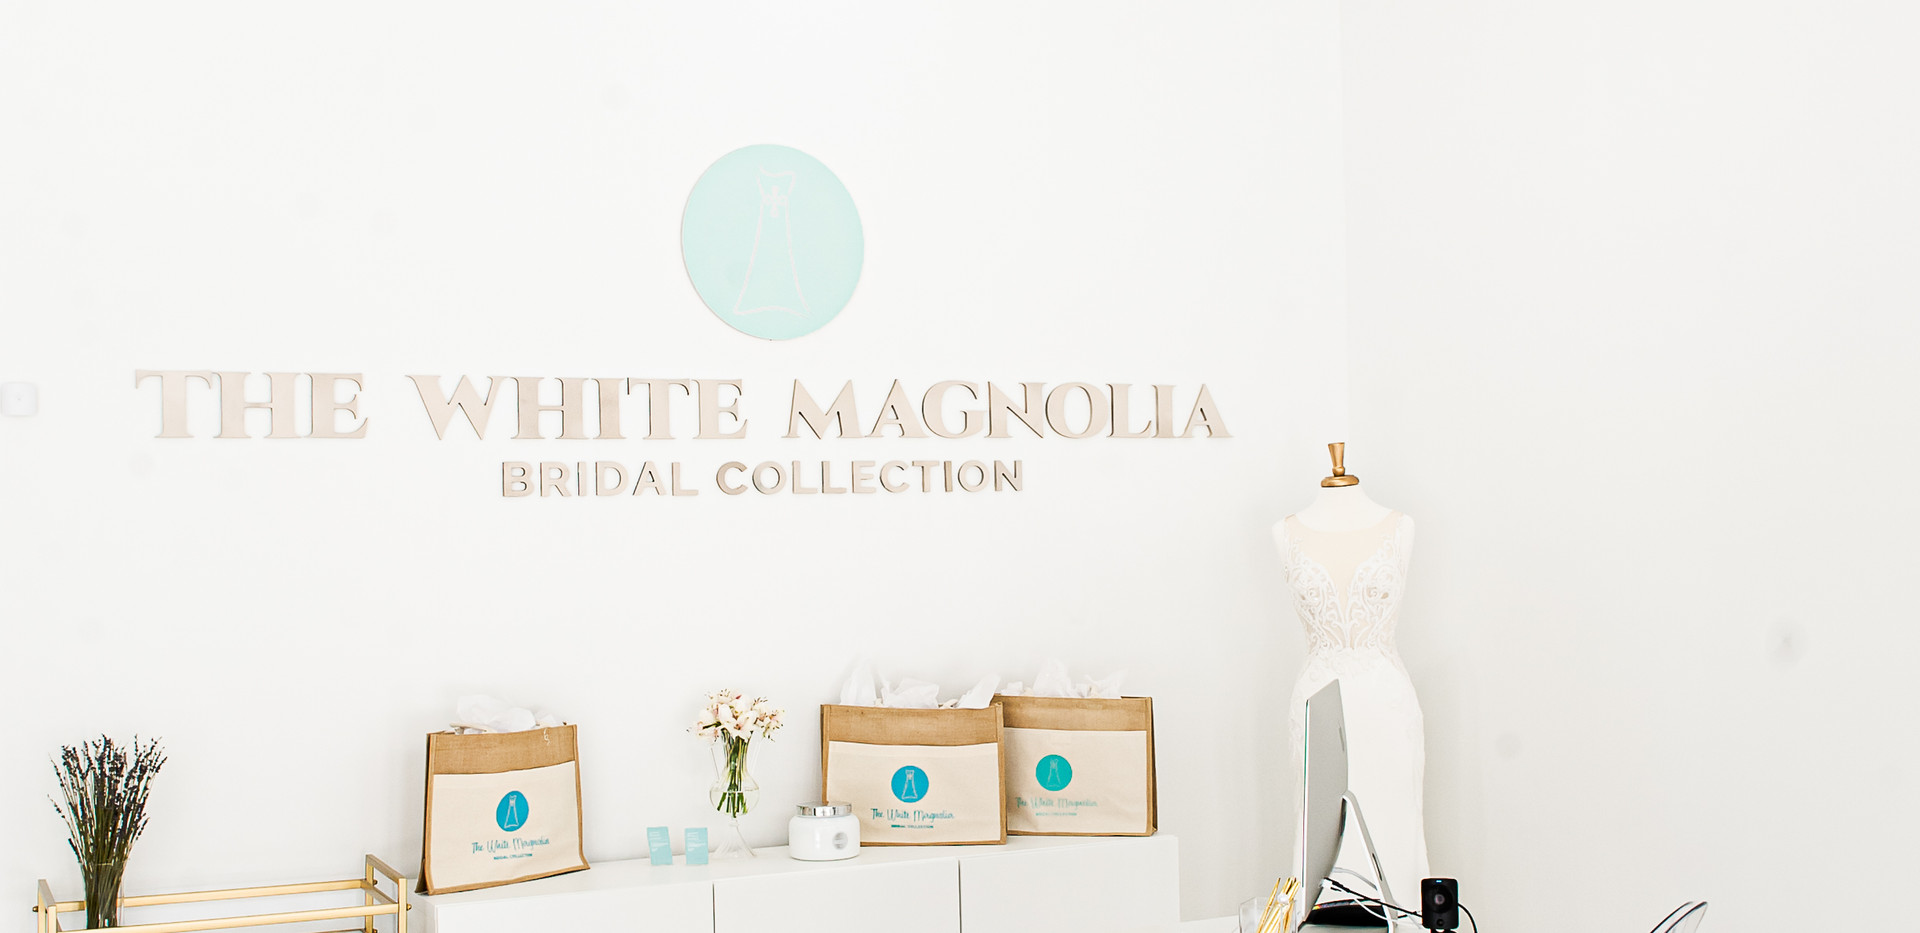 WhiteMagnoliaBridalCollectionbyPalmBeach